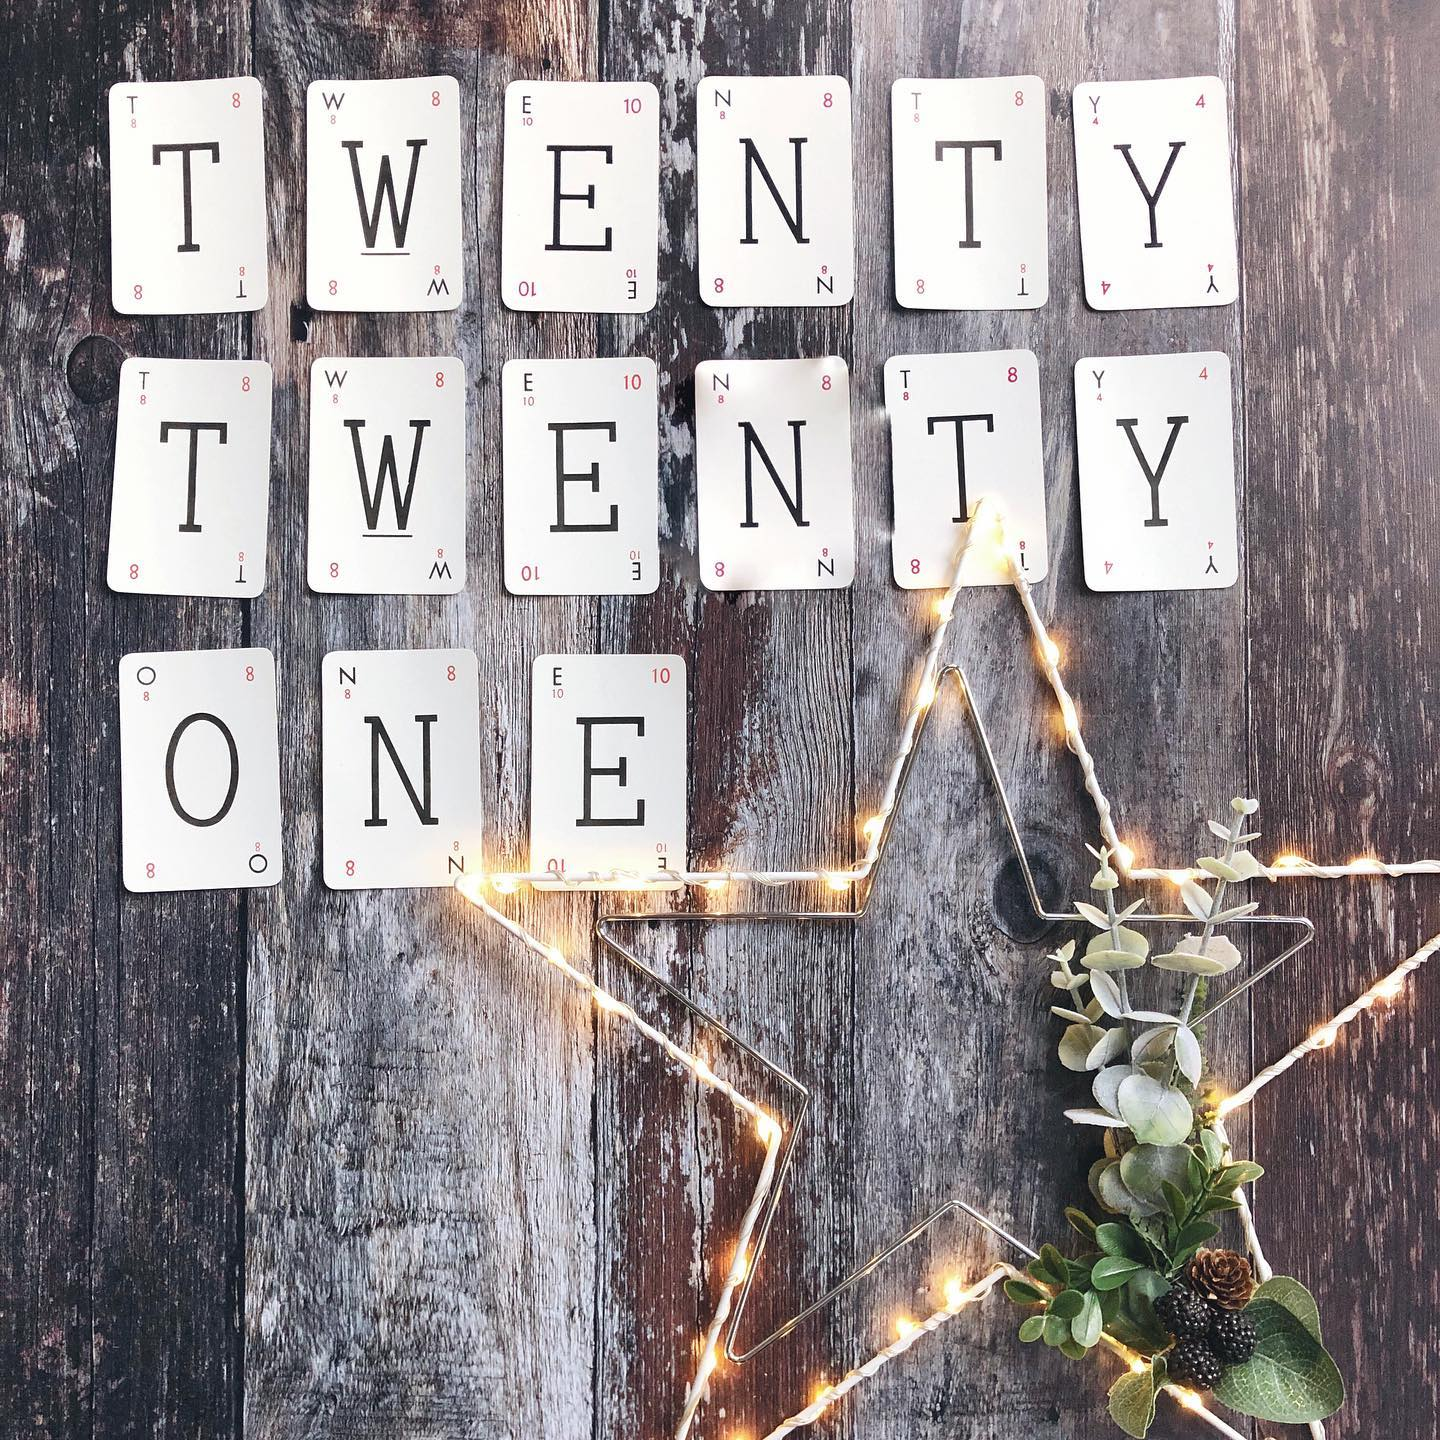 """It's 2021 - only a day or two late! Not one for New Year's resolutions (or """"revolutions"""" as my son used to call them). With so many changes and uncertainties, hoping for a better 2021 but my trust is in God who is bigger than any virus. I am holding on to this verse : The Lord is my strength and my shield; in him my heart trusts, and I am helped; my heart exults, and with my song I give thanks to him.Psalm 28:7What is your hope for 2021?"""